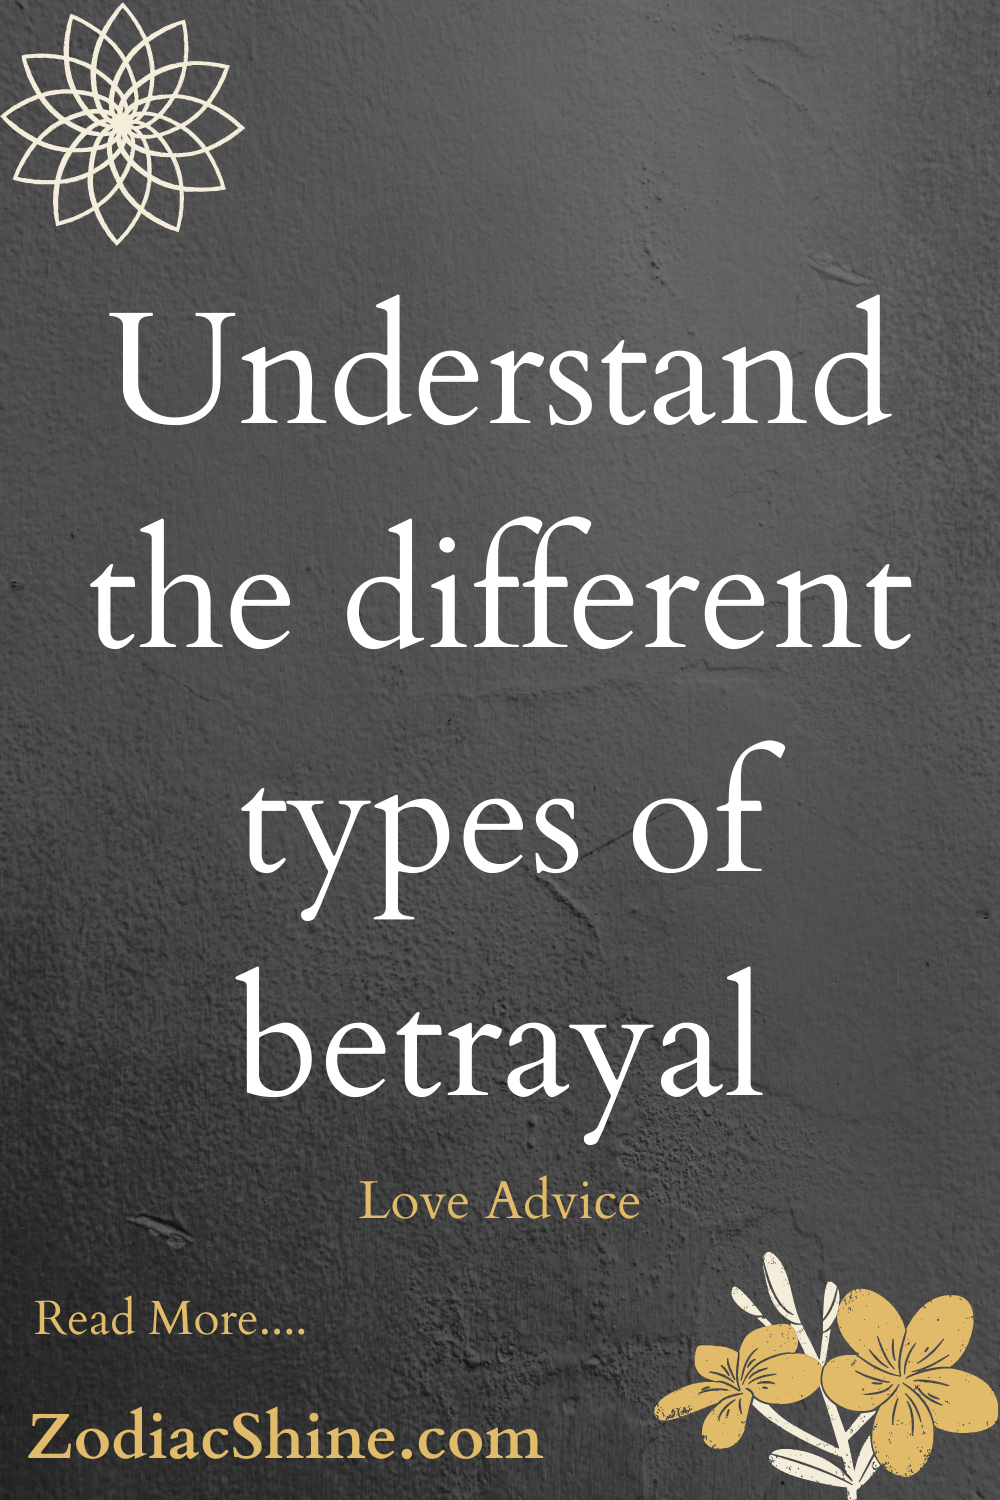 Understand the different types of betrayal